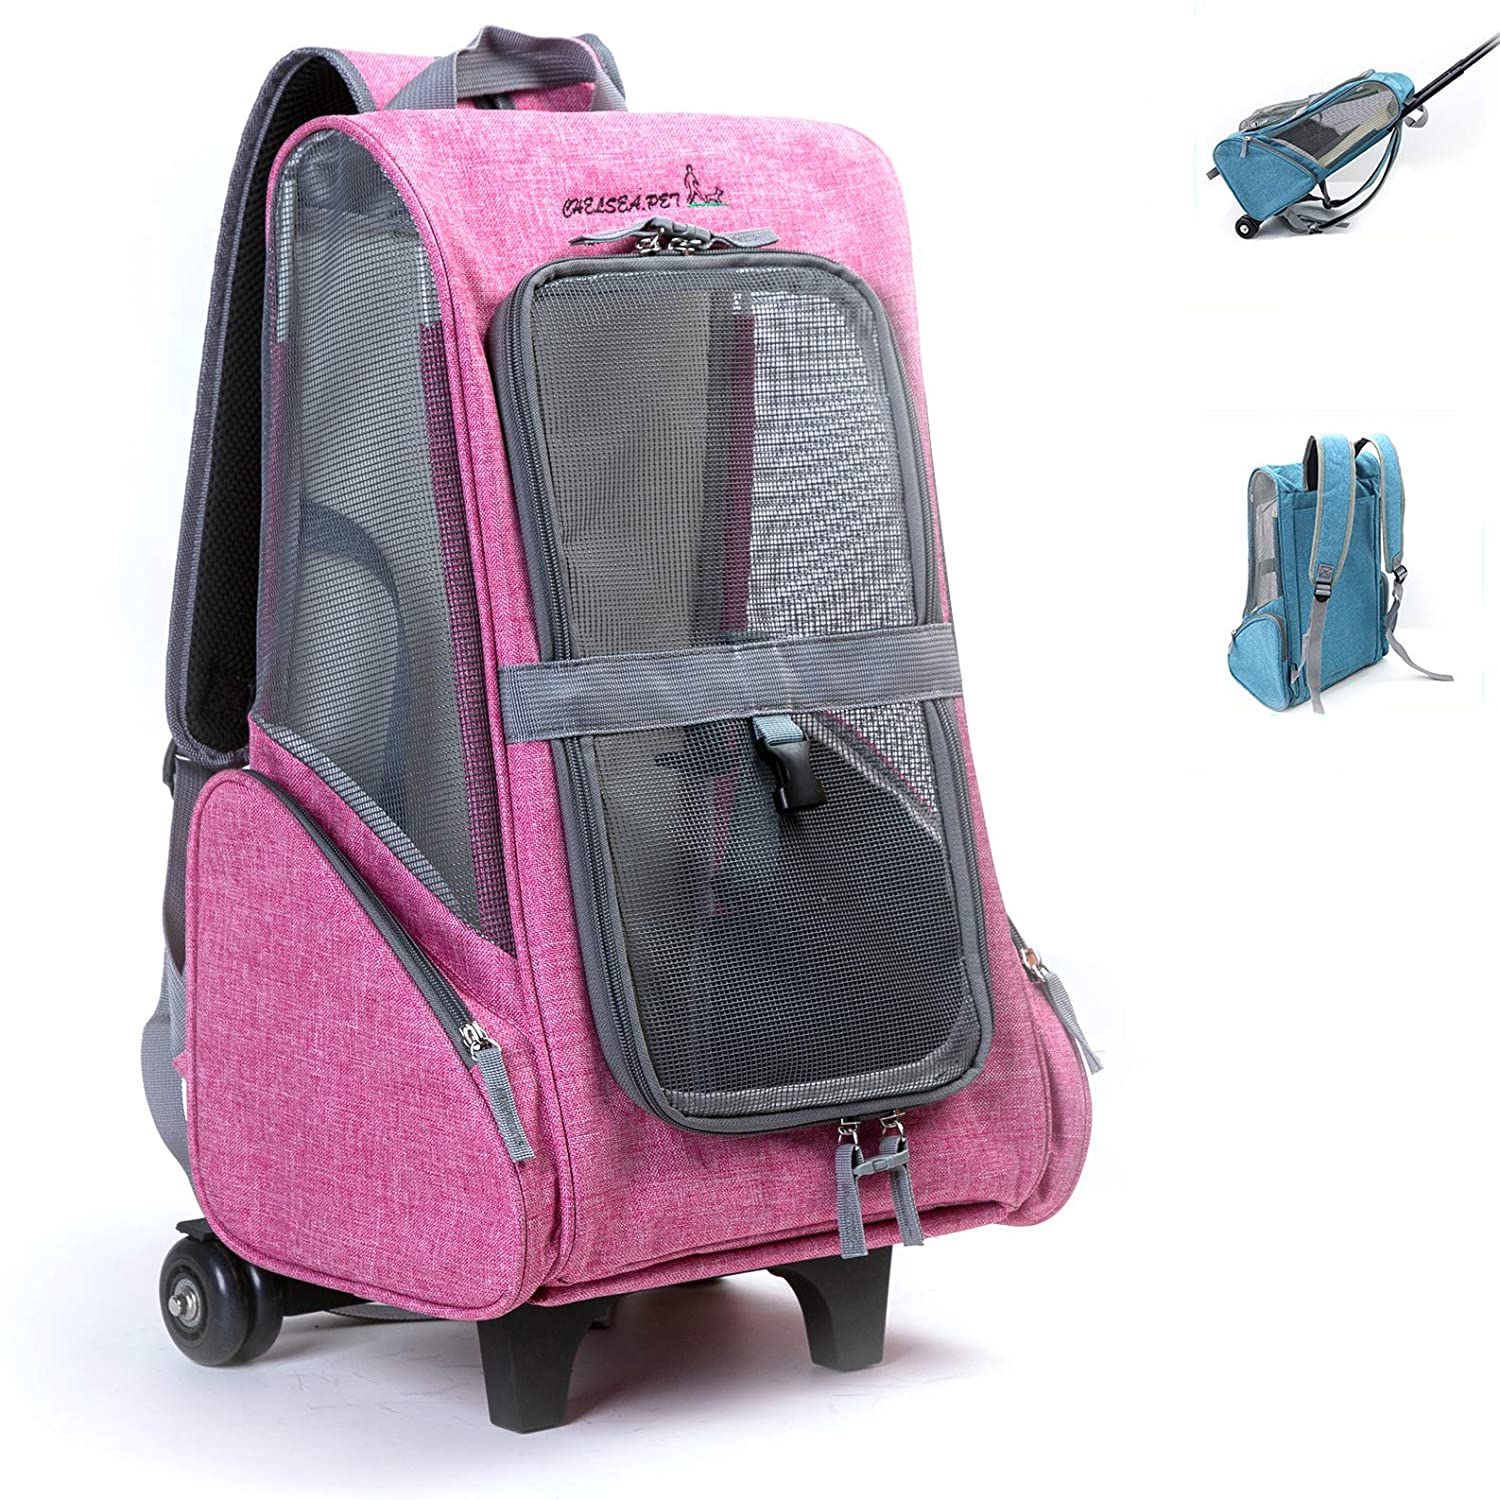 pink Tineer Multifunction Pet Travel Carrier Detachable pet Trolley Bag,Pet Collapsible Backpack Portable for Small Dogs,Kittens,Rabbits (pink)